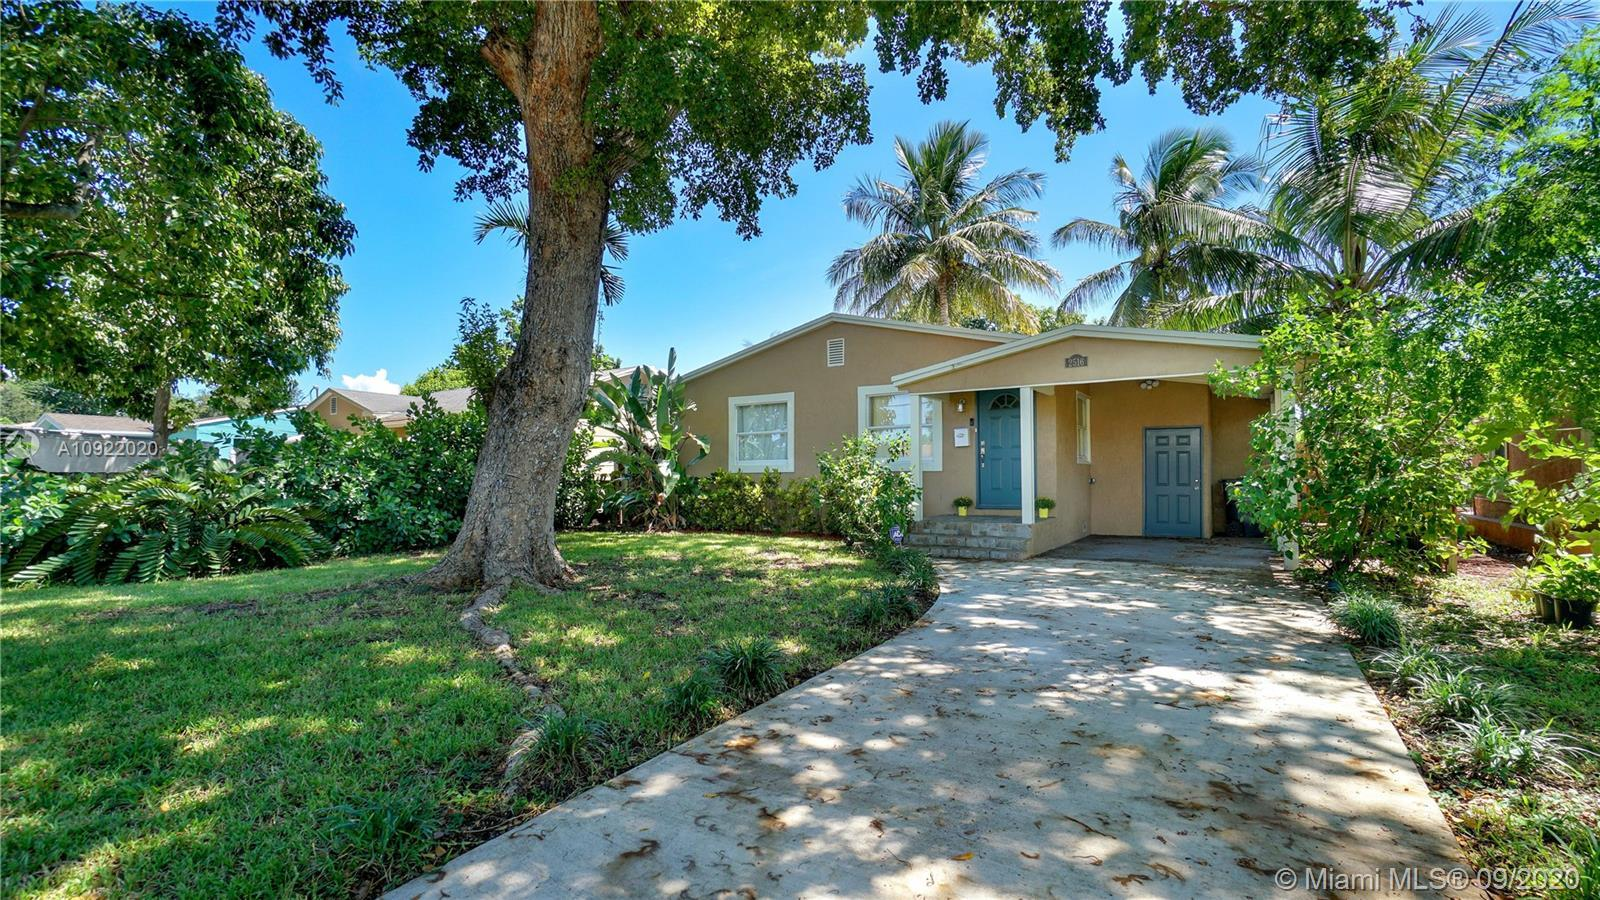 Completely remodeled 1135 sq ft, 2 bedroom, 1 bathroom turn key move in ready home. EASILY CONVERT I